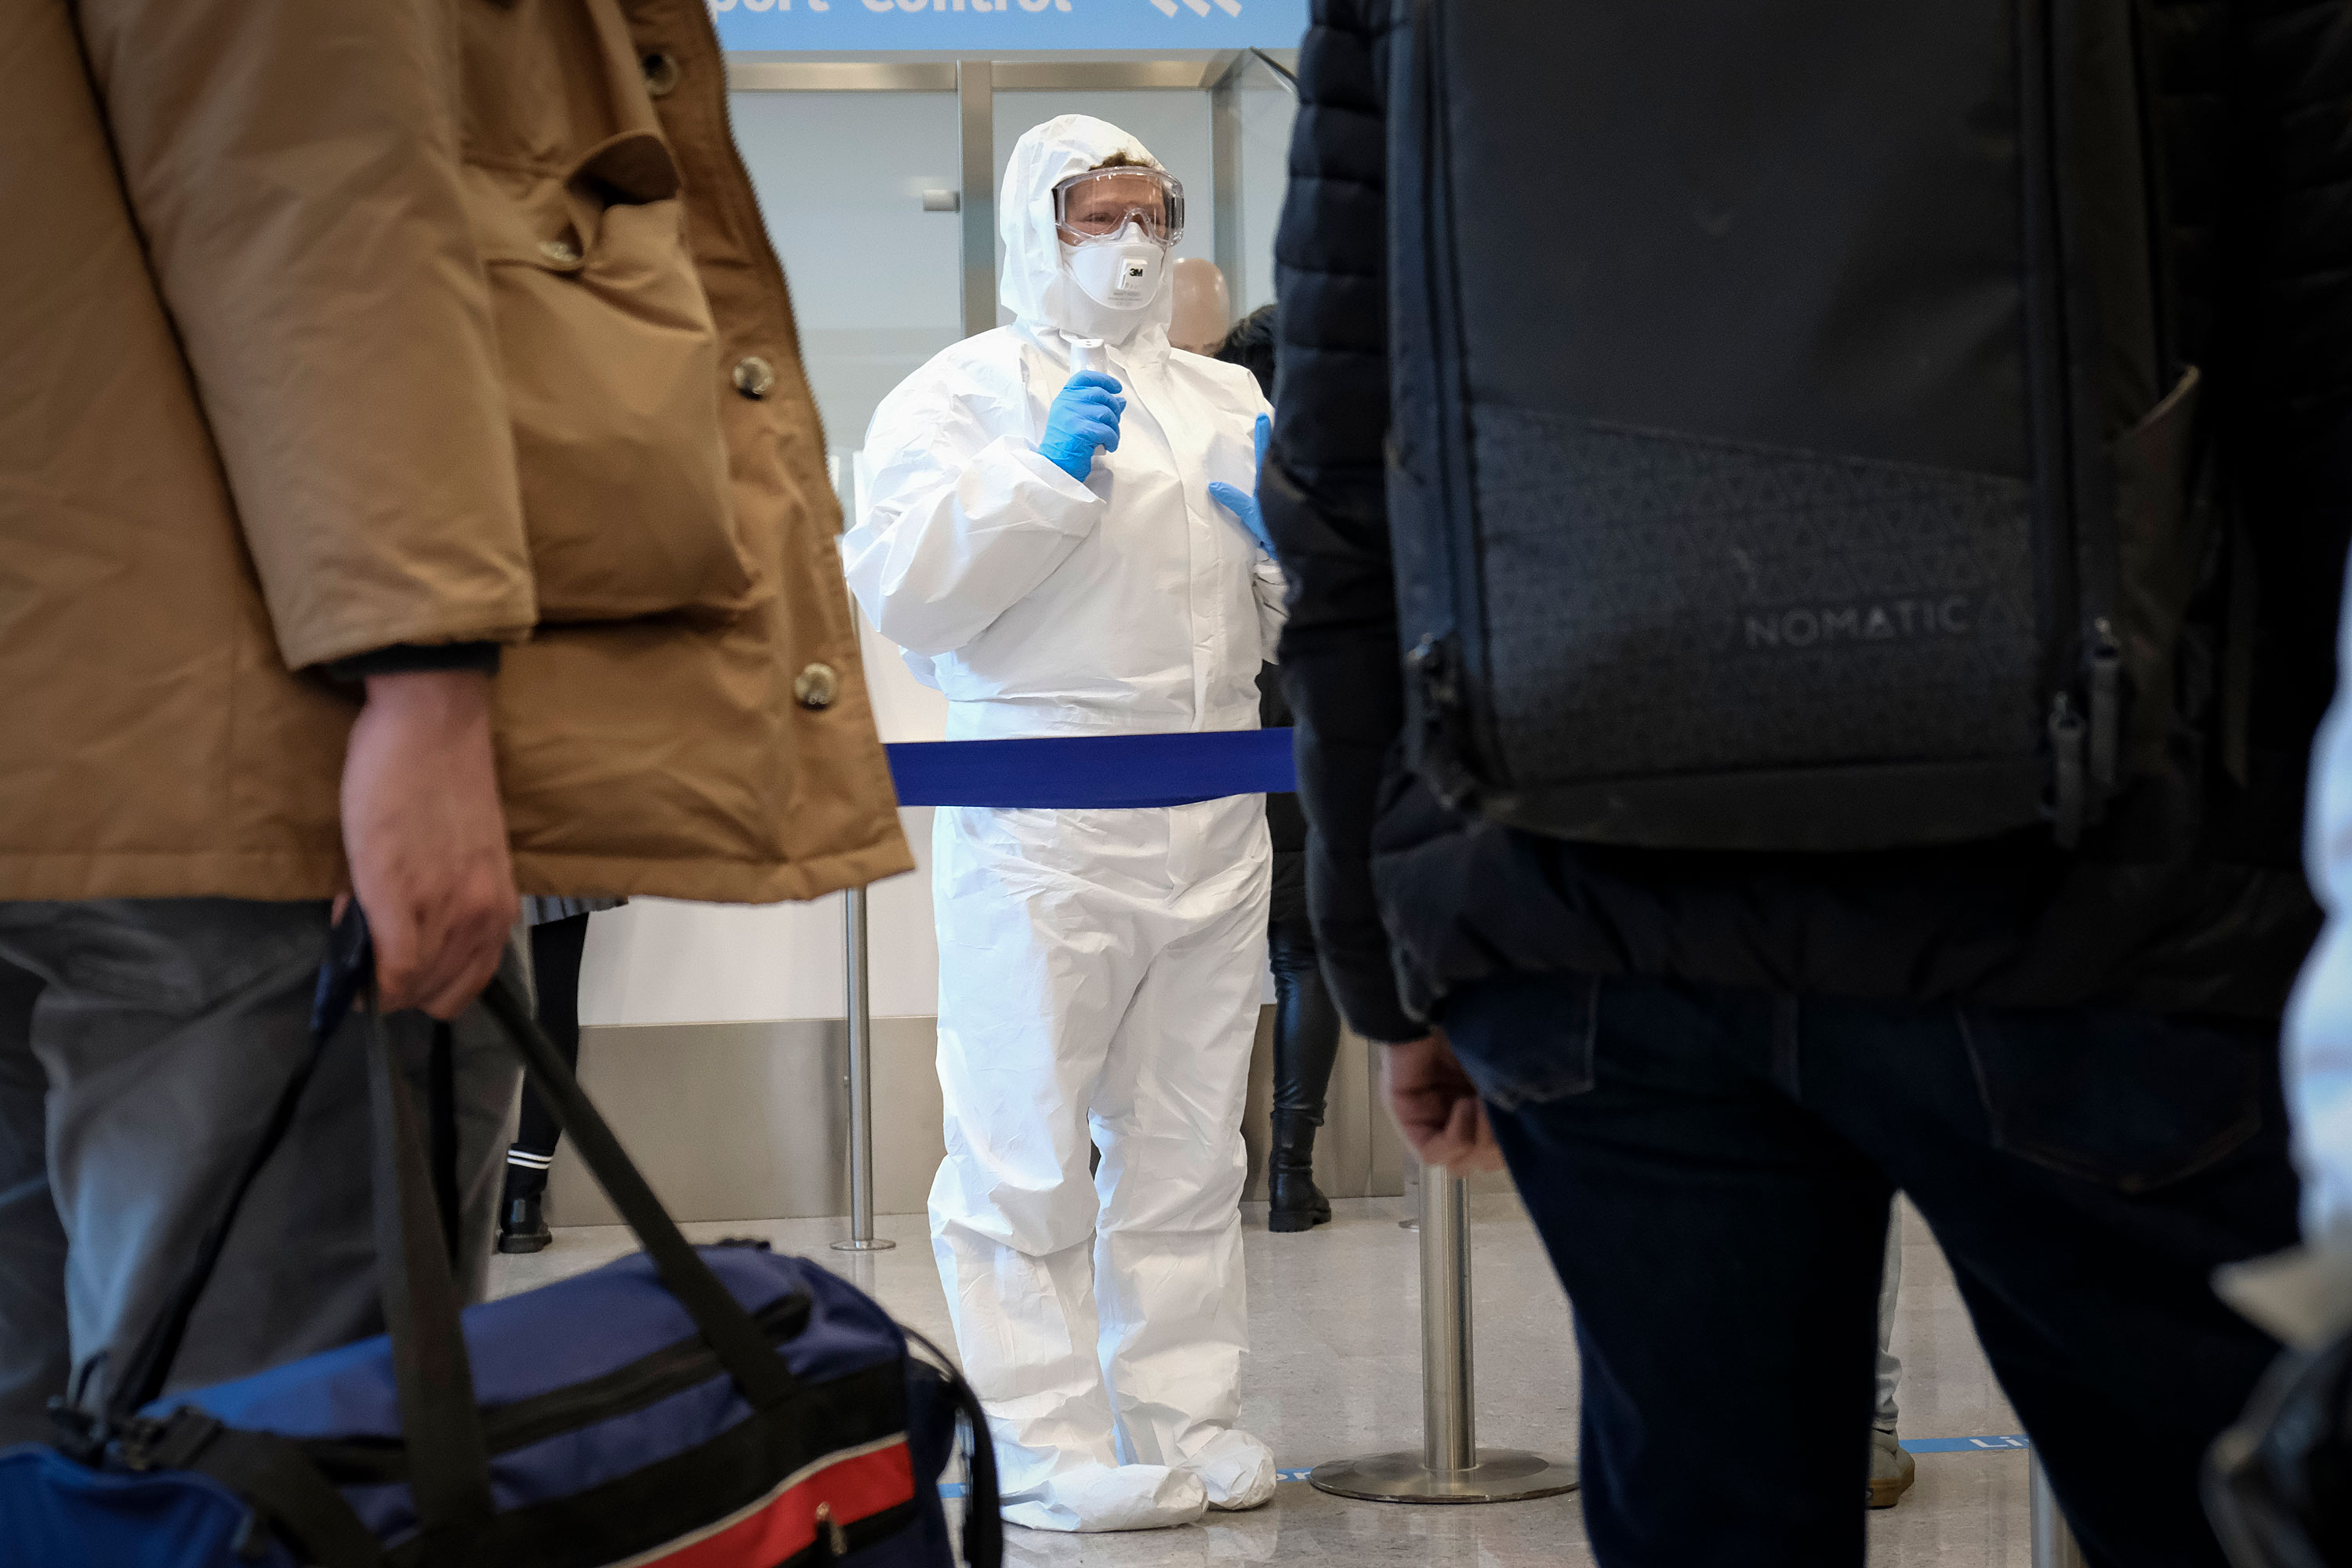 Health officials  measure the body temperature of incoming passengers. Trieste, 28th of February 2020. (Photo by Jacopo Landi/NurPhoto via Getty Images)